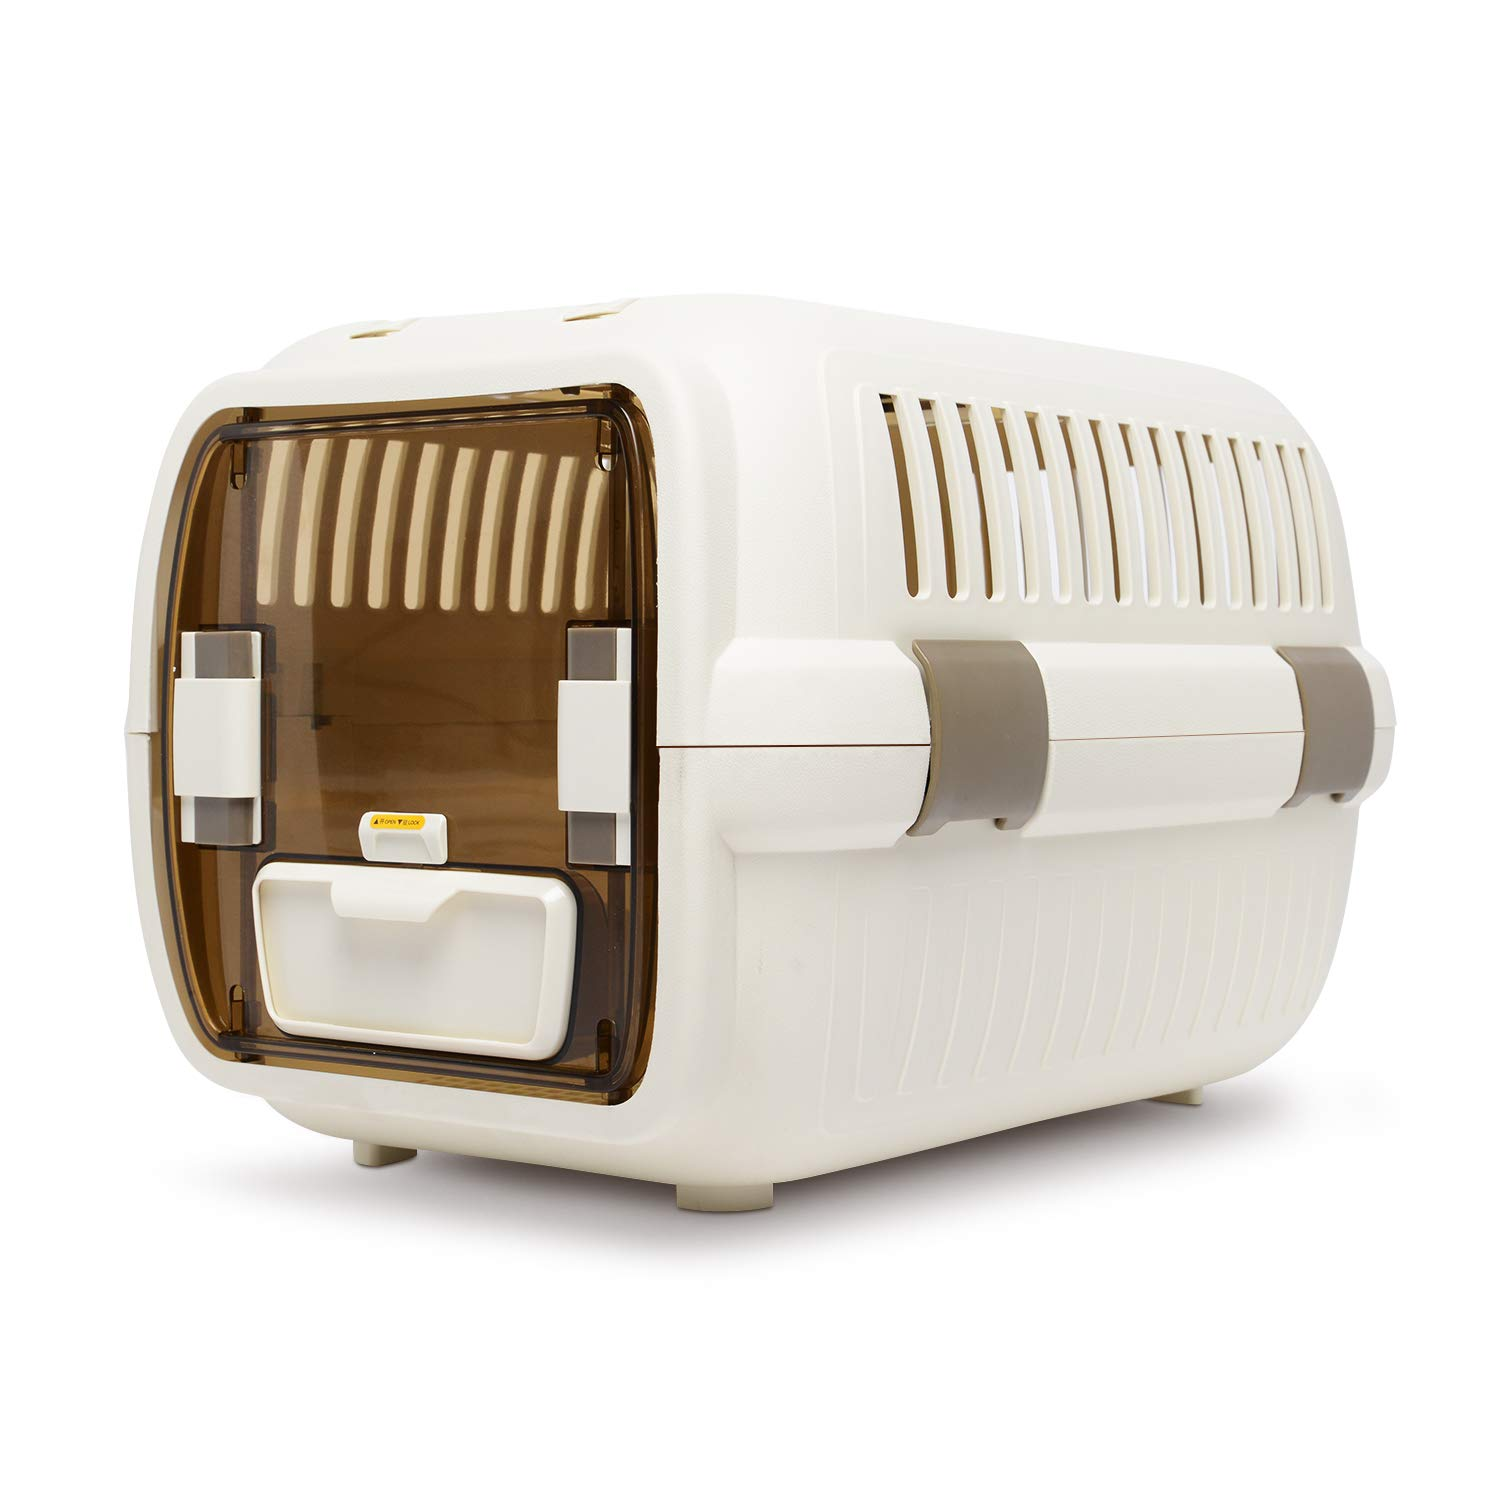 LAZY BUDDY Cat Carrier, Cat Travel Kennel with Food and Water Bowl for Cats, Dogs, and Other Pets. (Large) by LAZY BUDDY